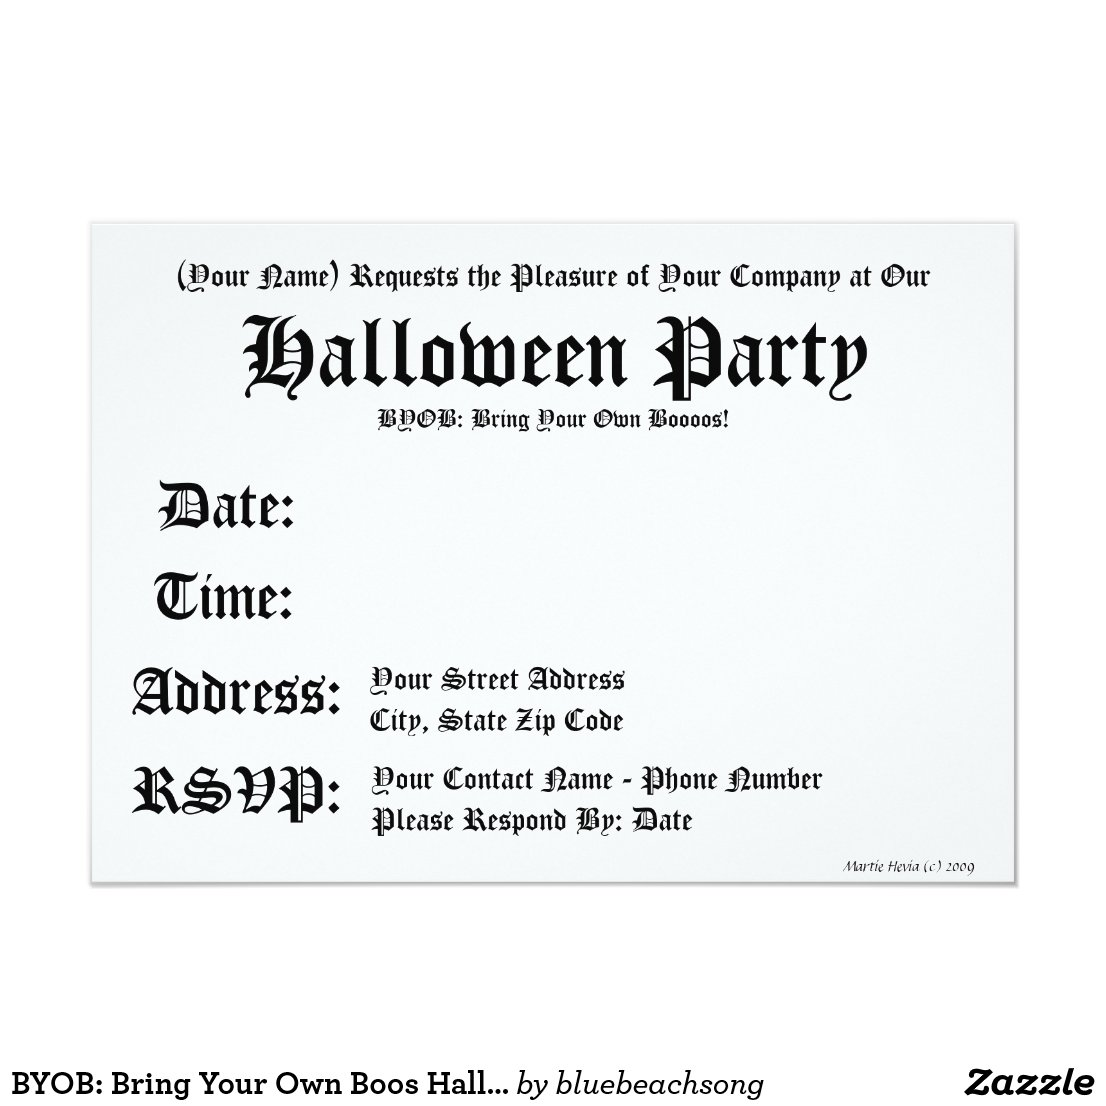 BYOB: Bring Your Own Boos Halloween Invitation